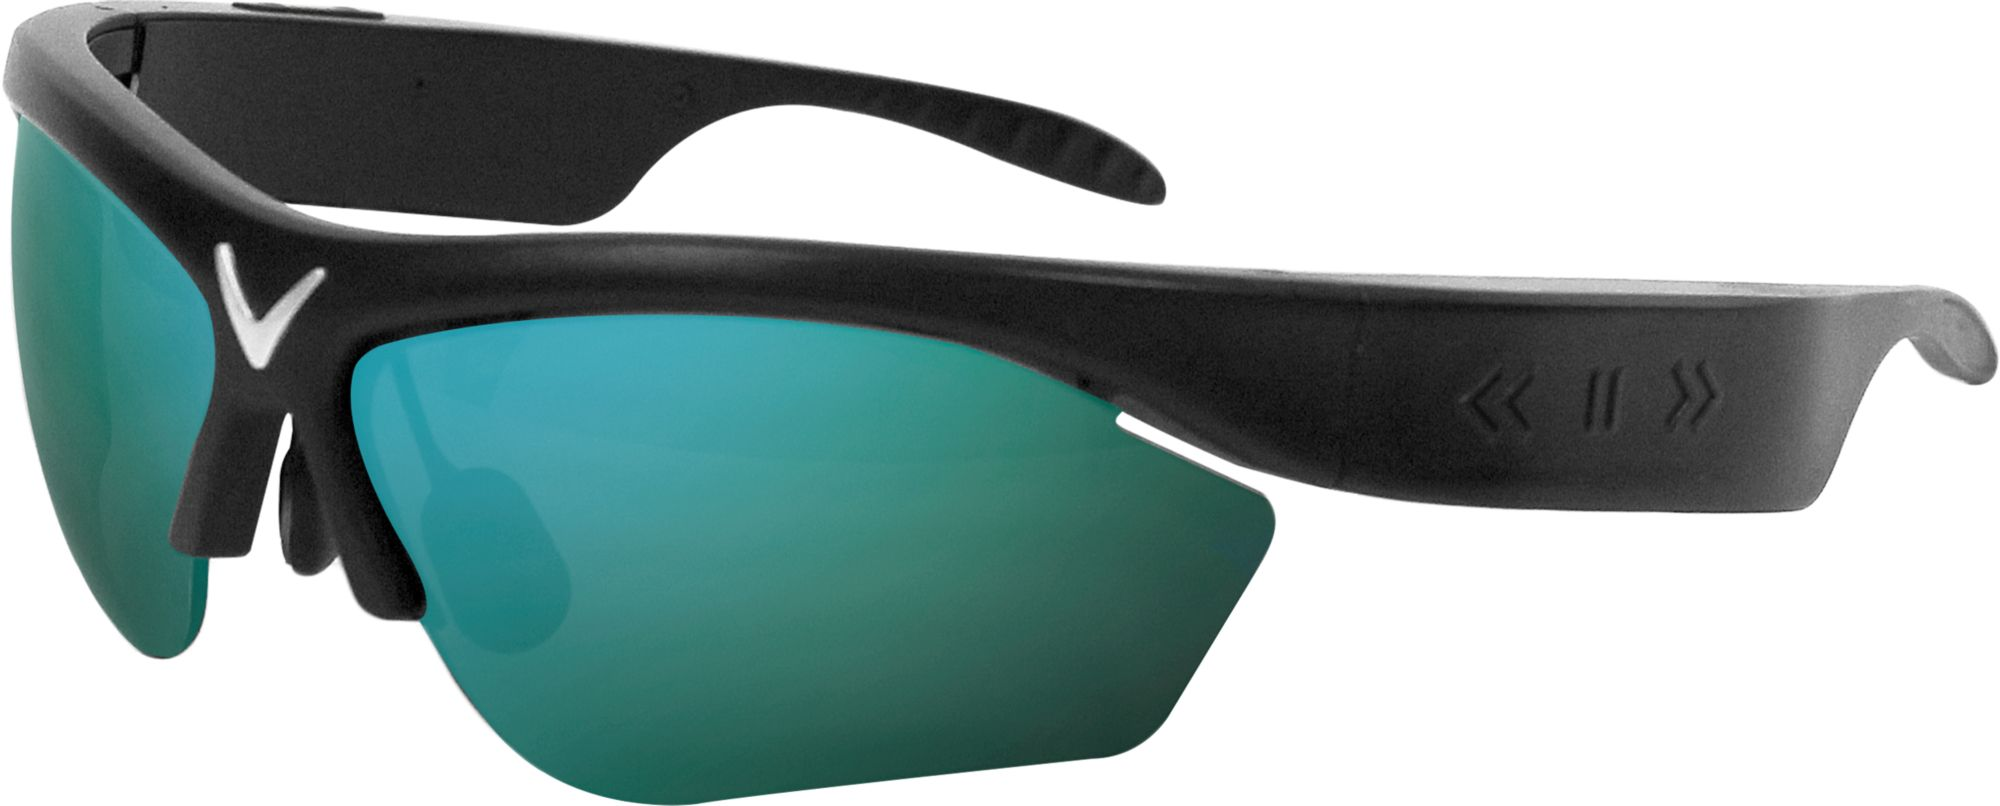 Best Sunglasses in Golf - Callaway Smart Polarized